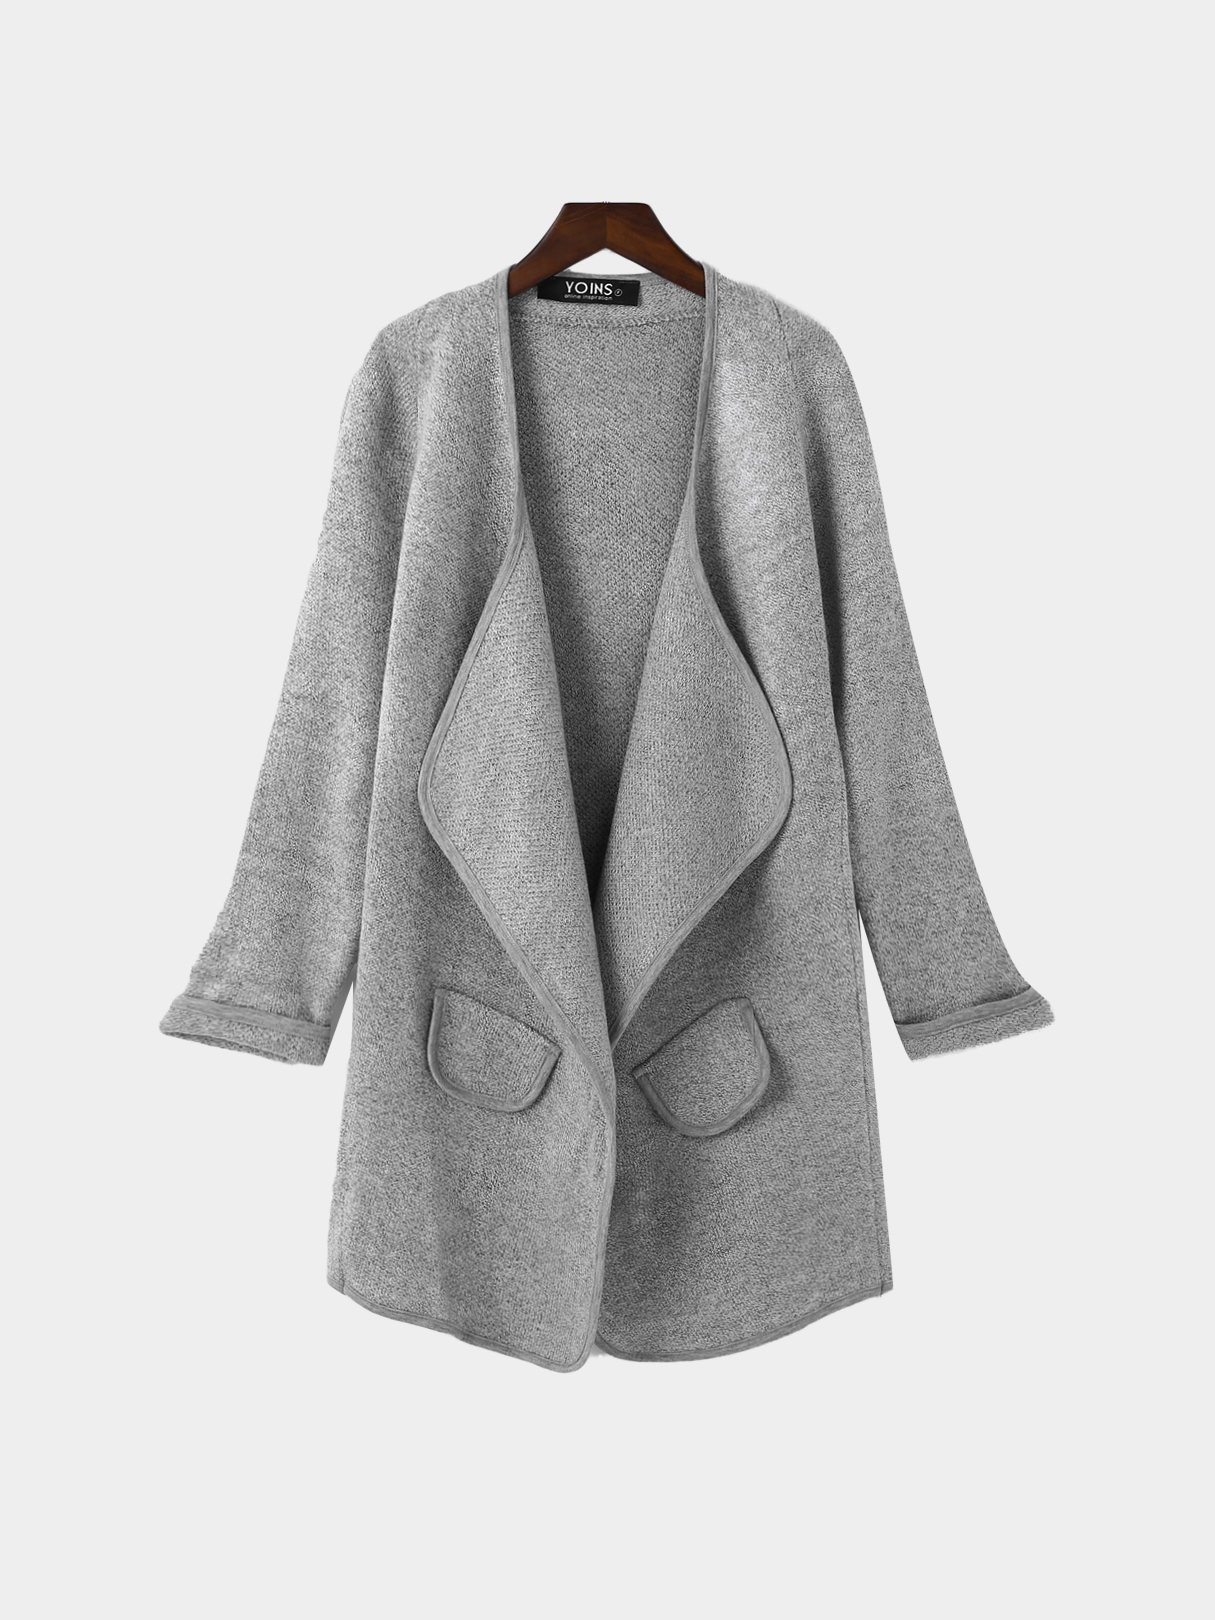 Grey Knit Long Length Cardigan with Pockets grey two side pockets long sleeves outerwear